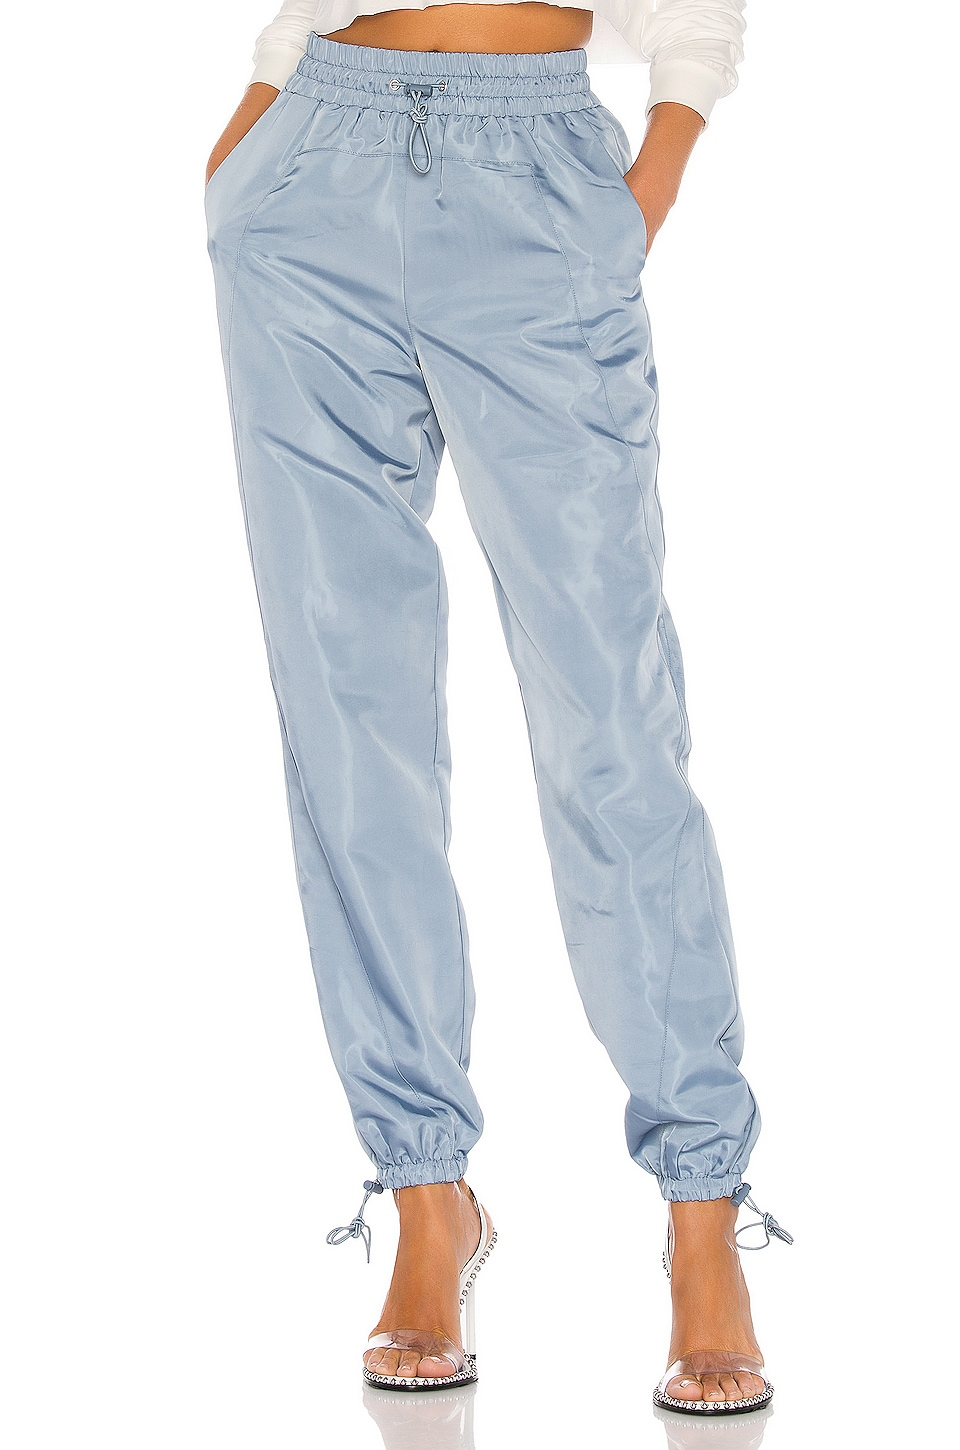 Lovers + Friends Lydia Jogger Pant in Storm Blue